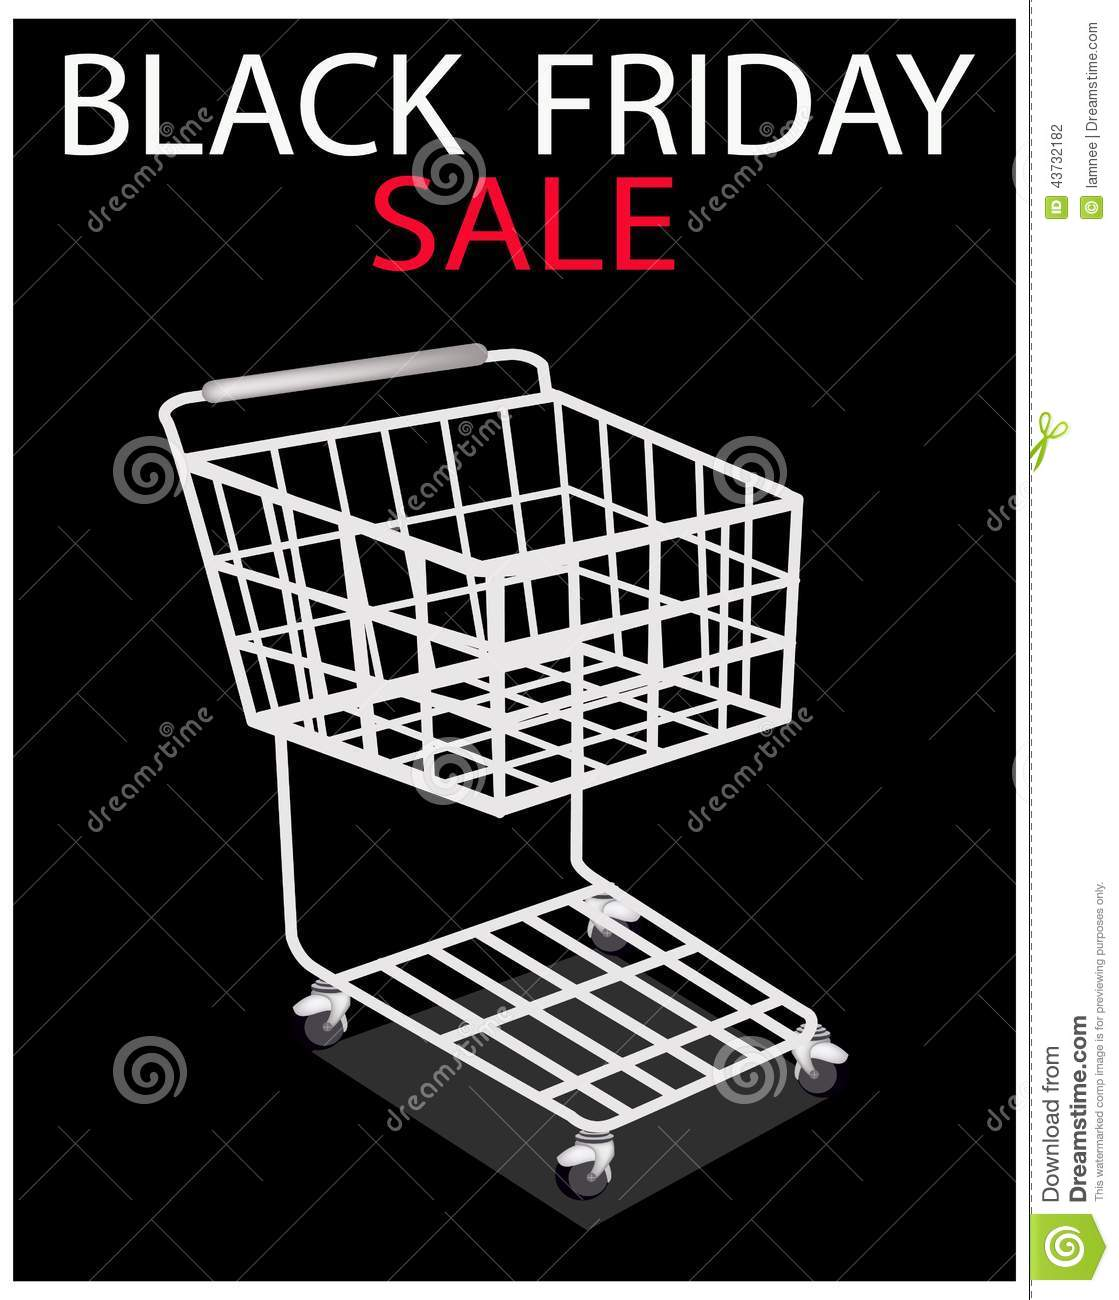 a shopping cart on black friday promotion stock vector. Black Bedroom Furniture Sets. Home Design Ideas